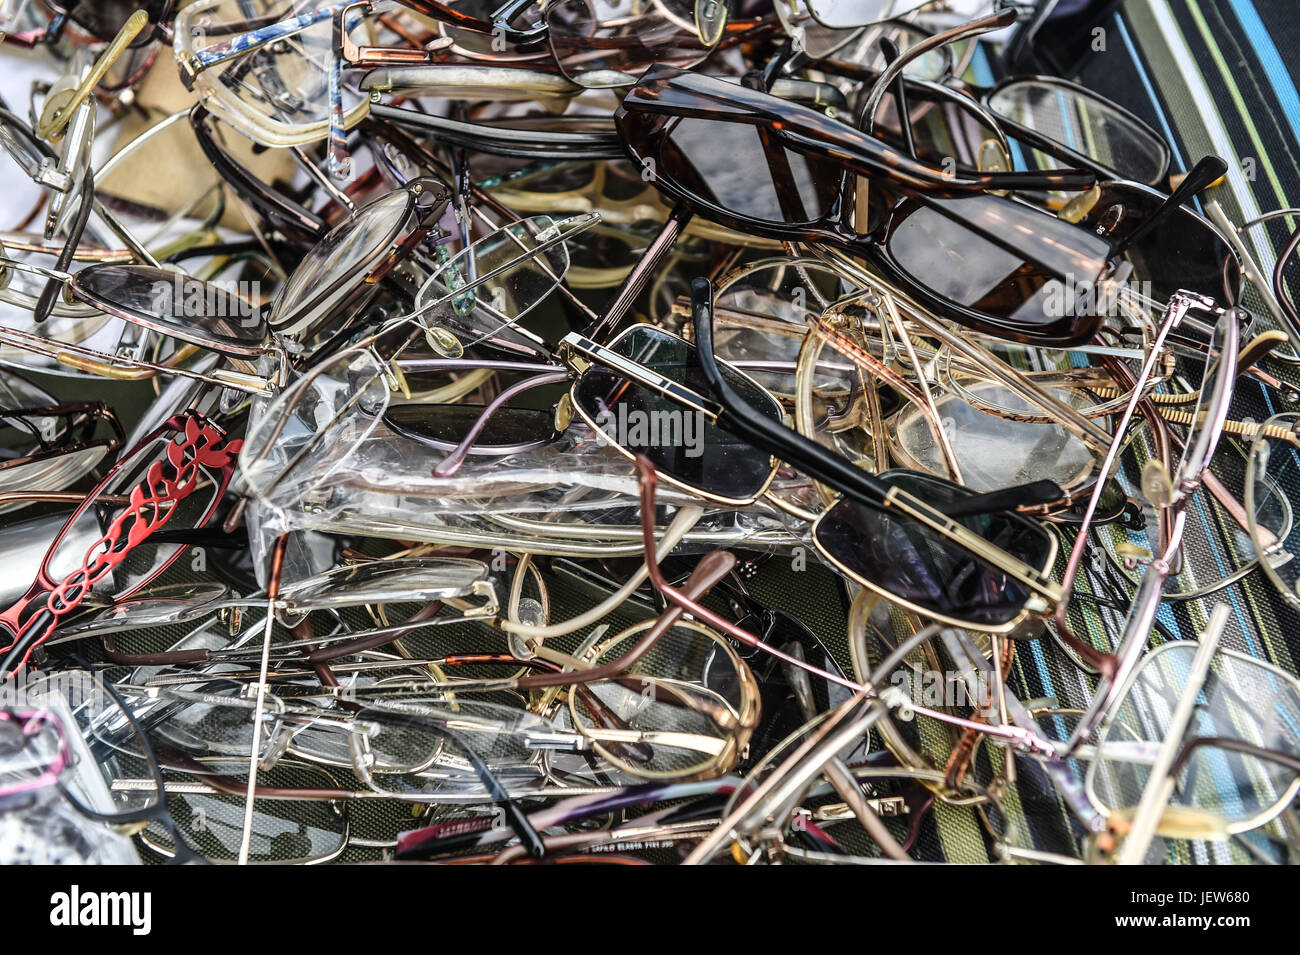 Copyrighted Image by Paul Slater/PSI - Unwanted Spectacles, Glasses to be recycled for World Glasses Day. - Stock Image